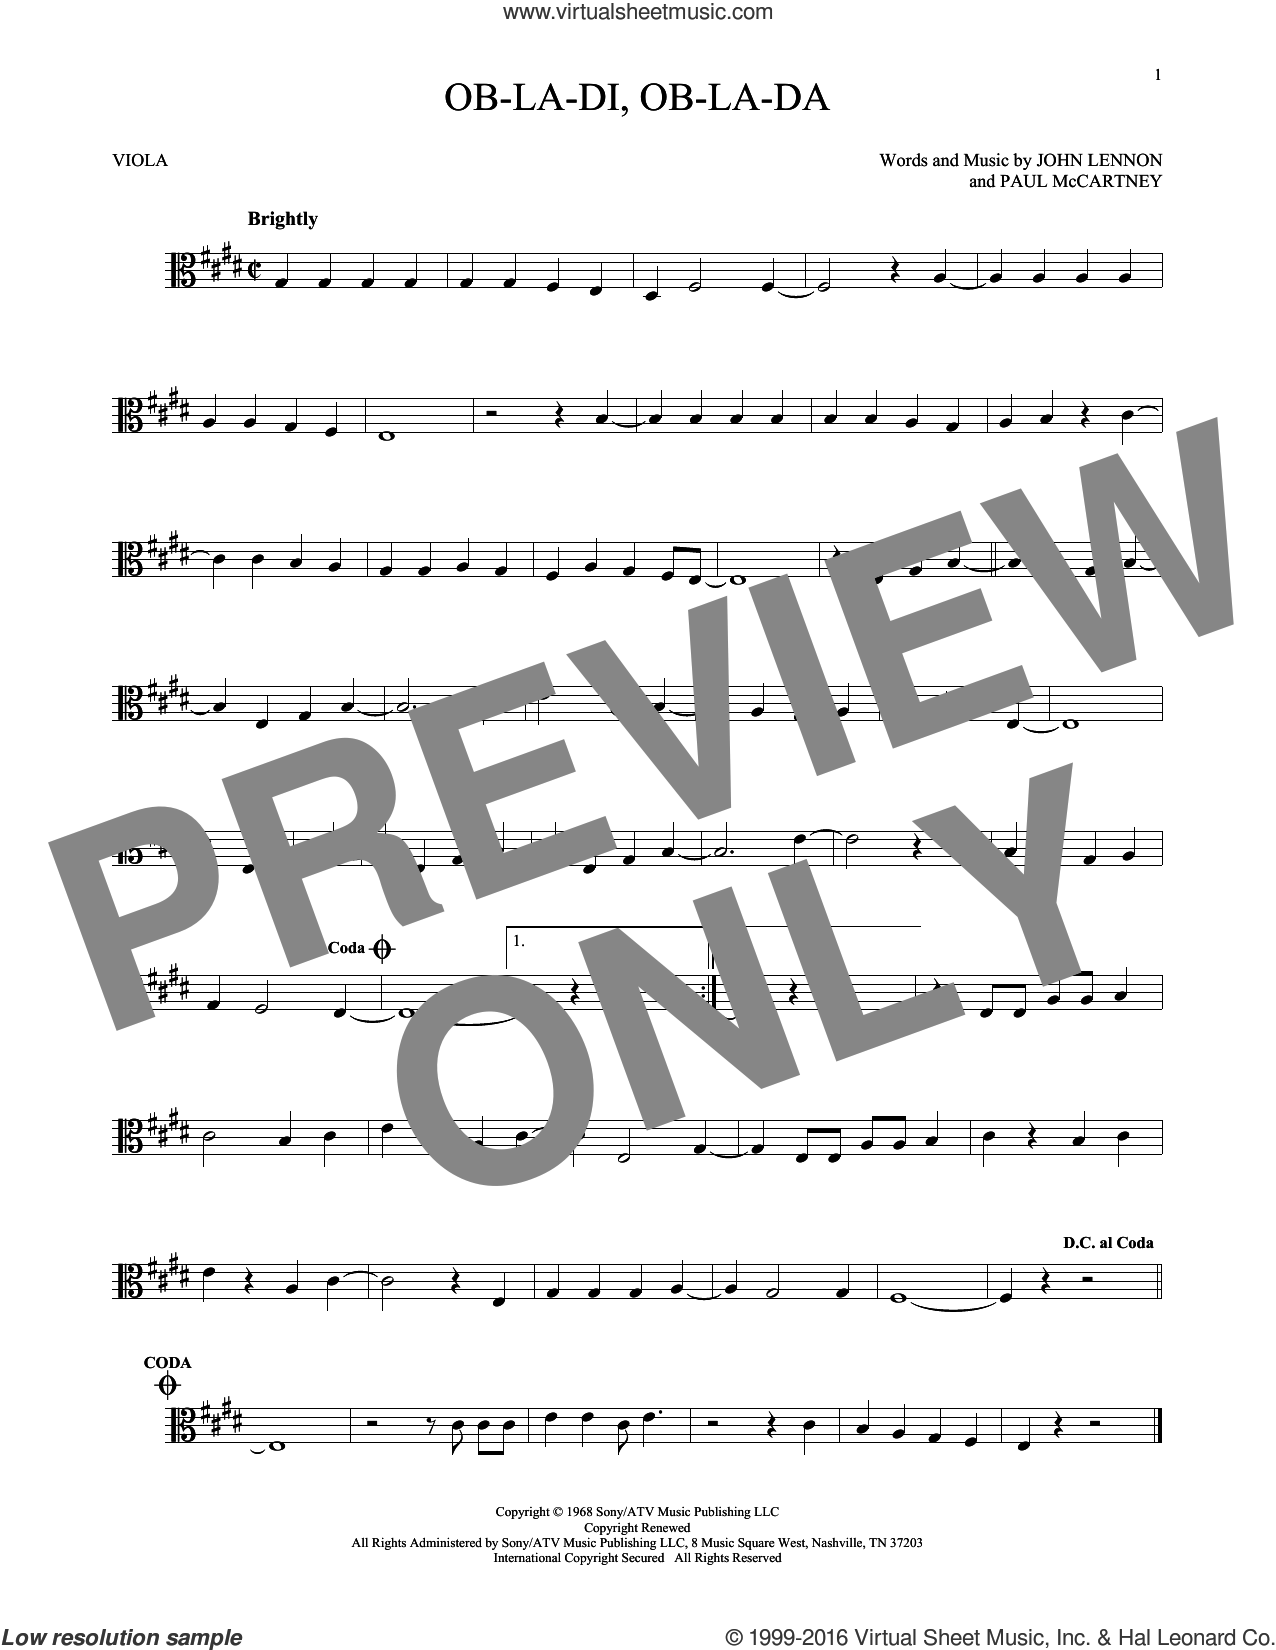 Ob-La-Di, Ob-La-Da sheet music for viola solo by The Beatles, John Lennon and Paul McCartney. Score Image Preview.